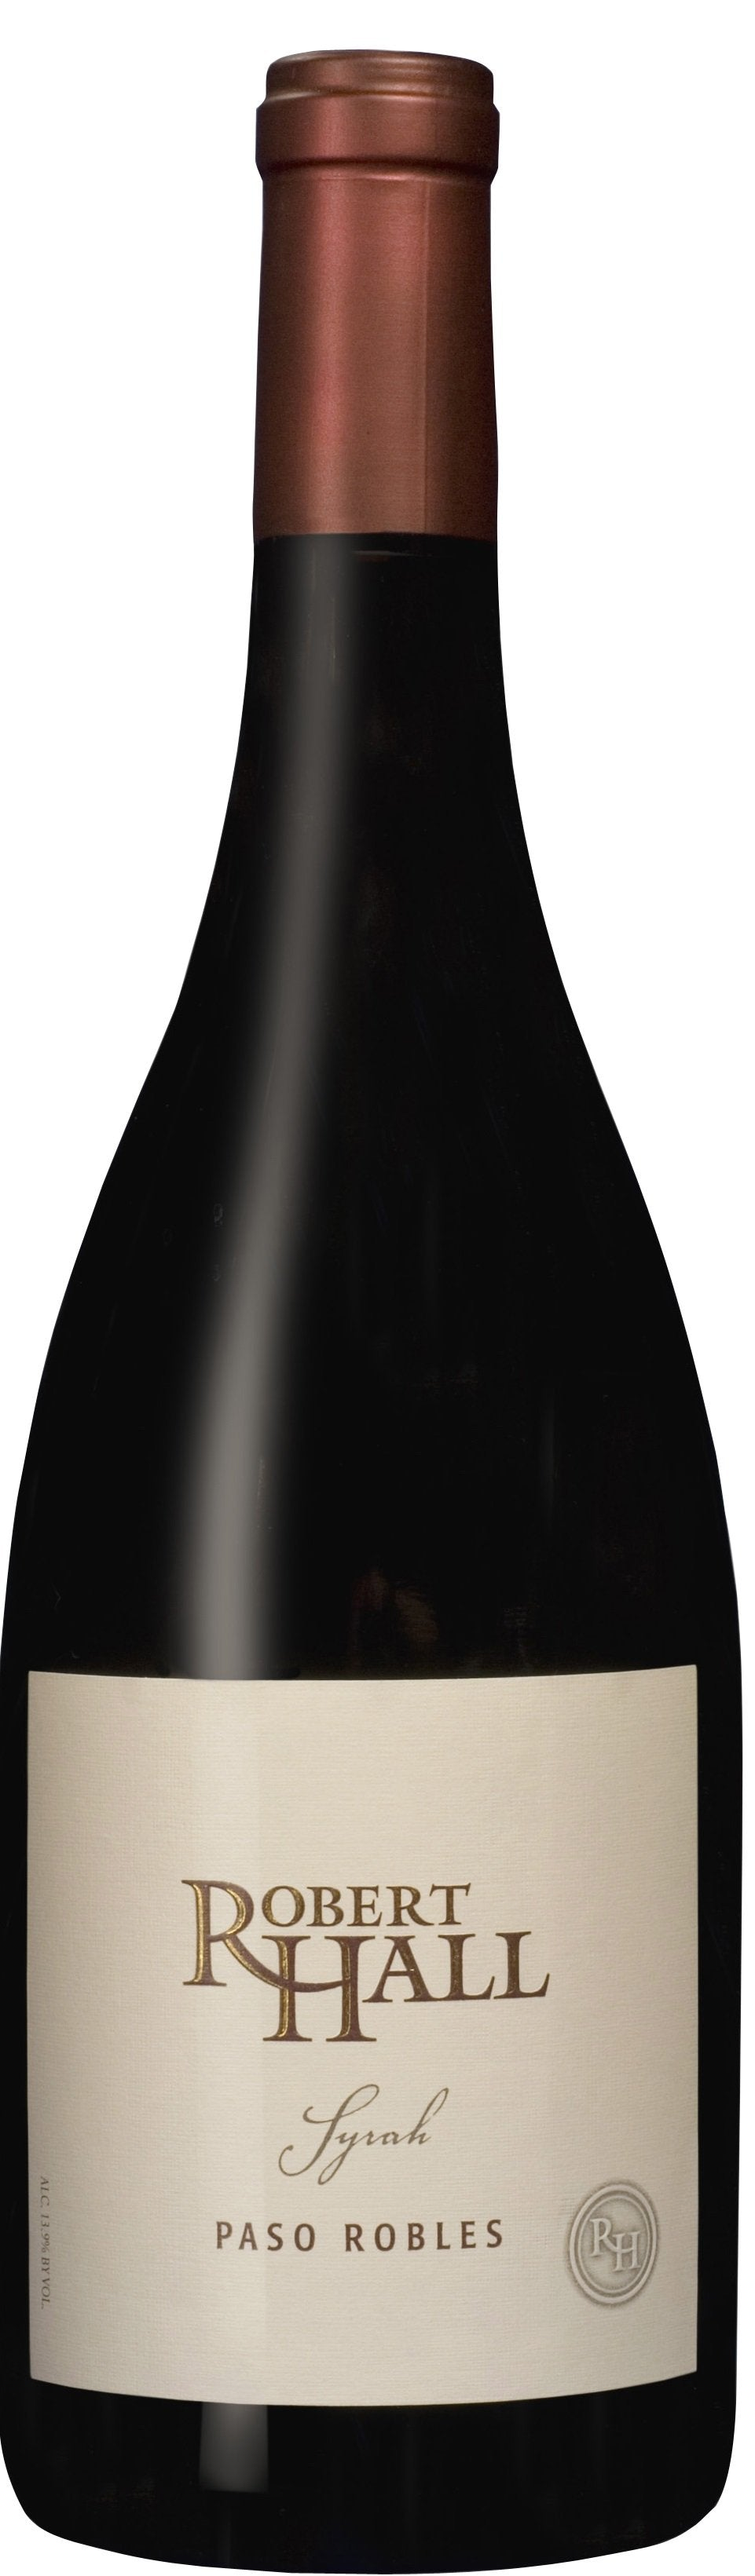 Robert Hall Syrah 2014